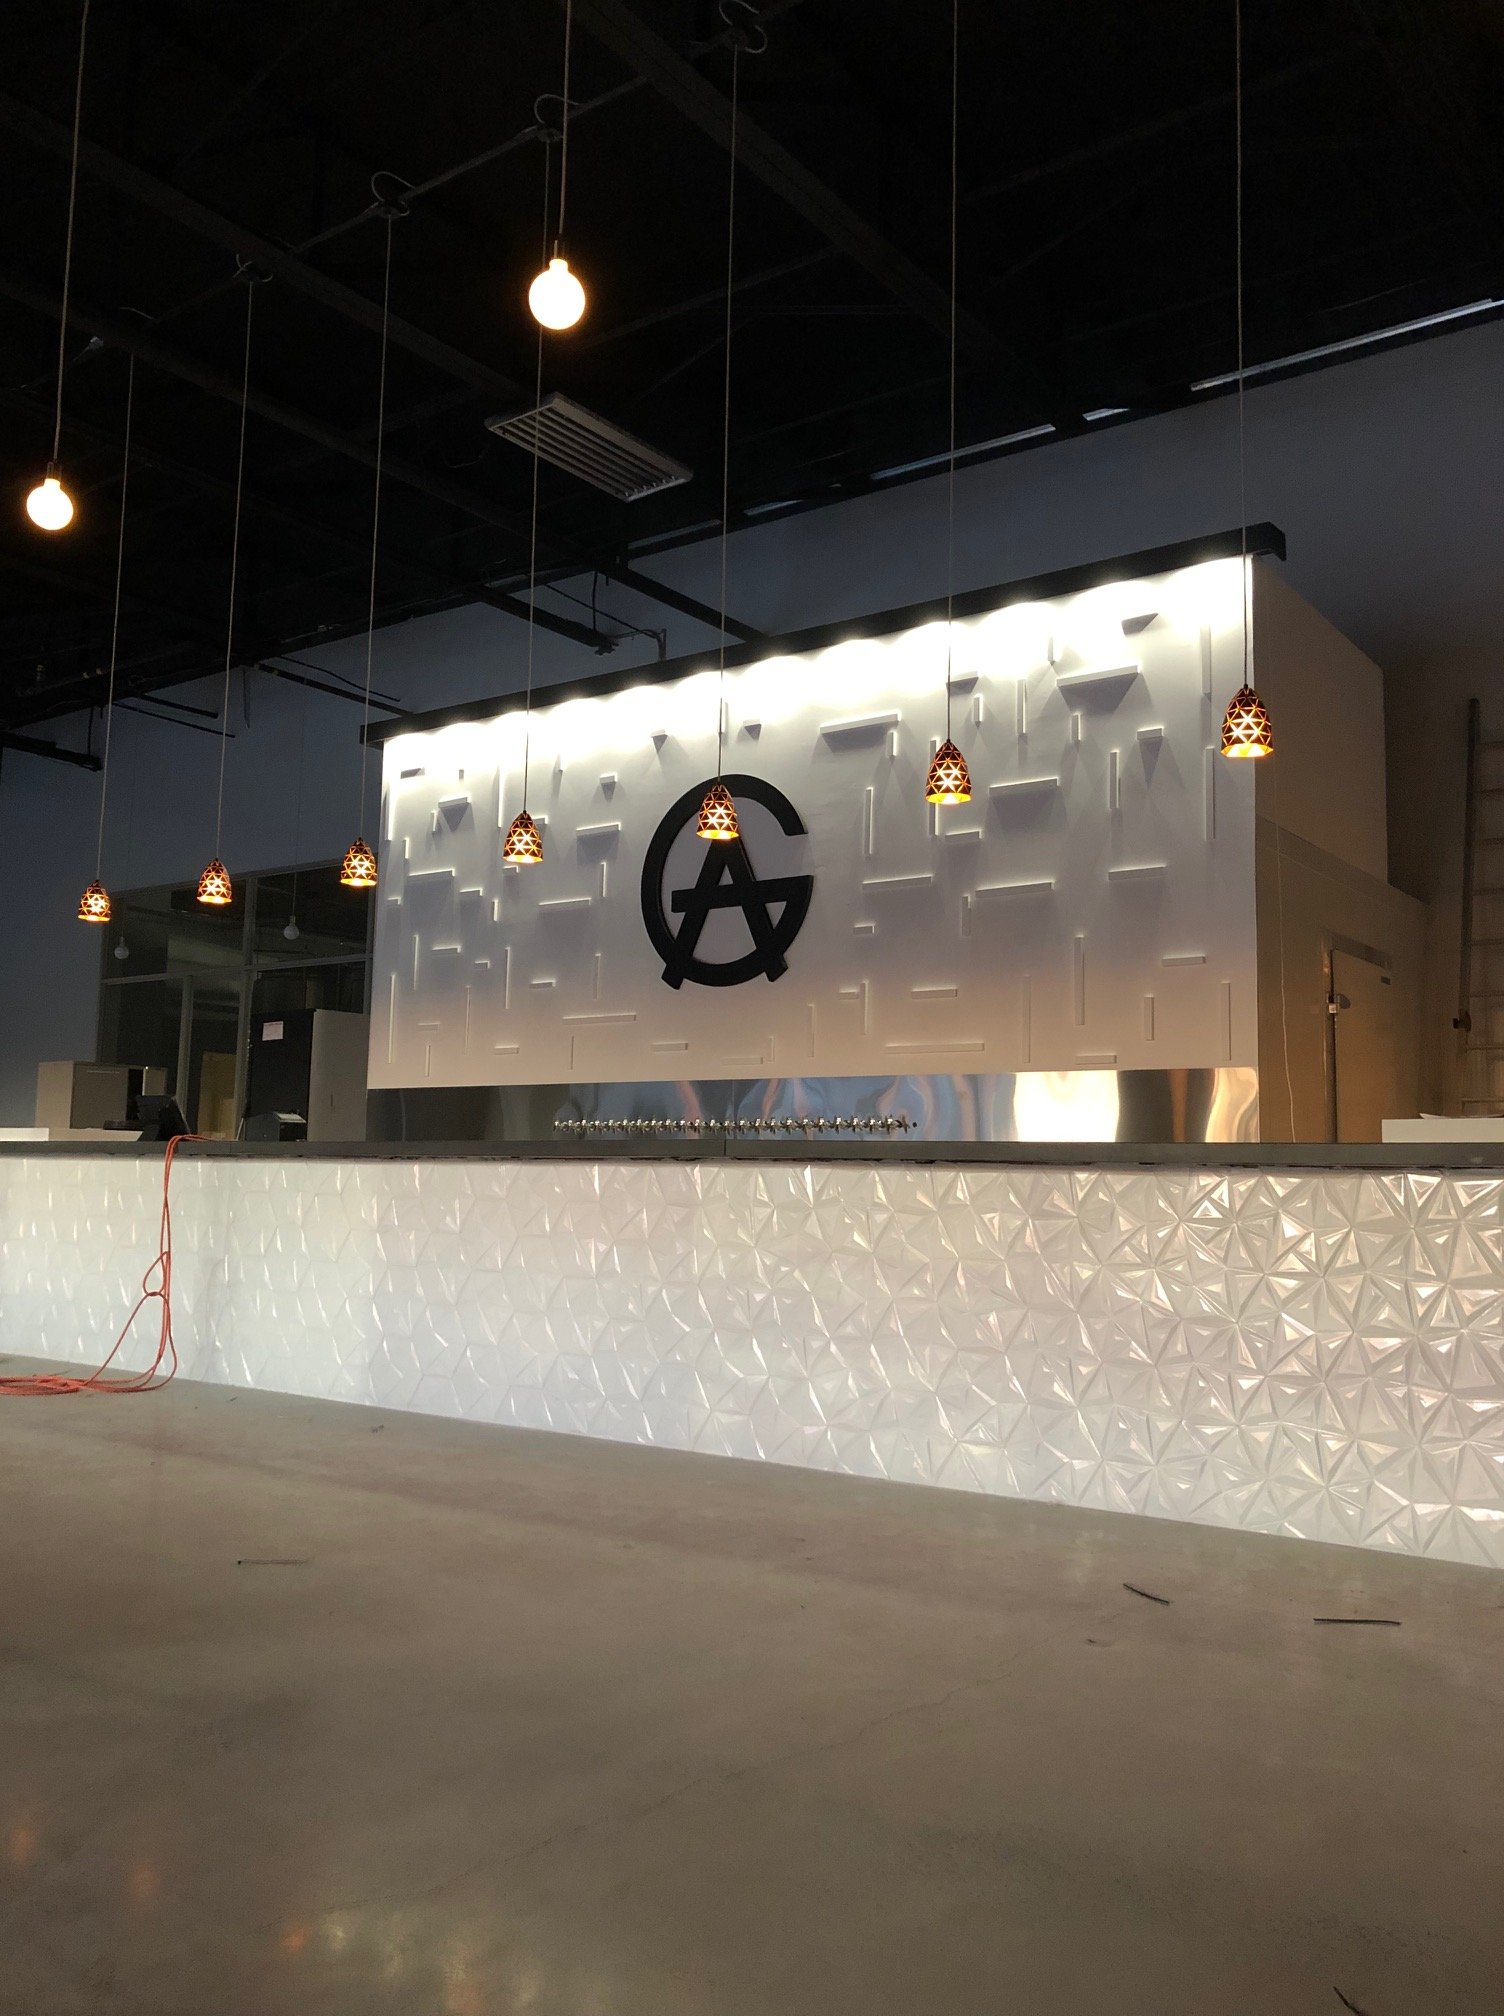 A New East End Microbrewery Is Open in a Former Bingo Hall